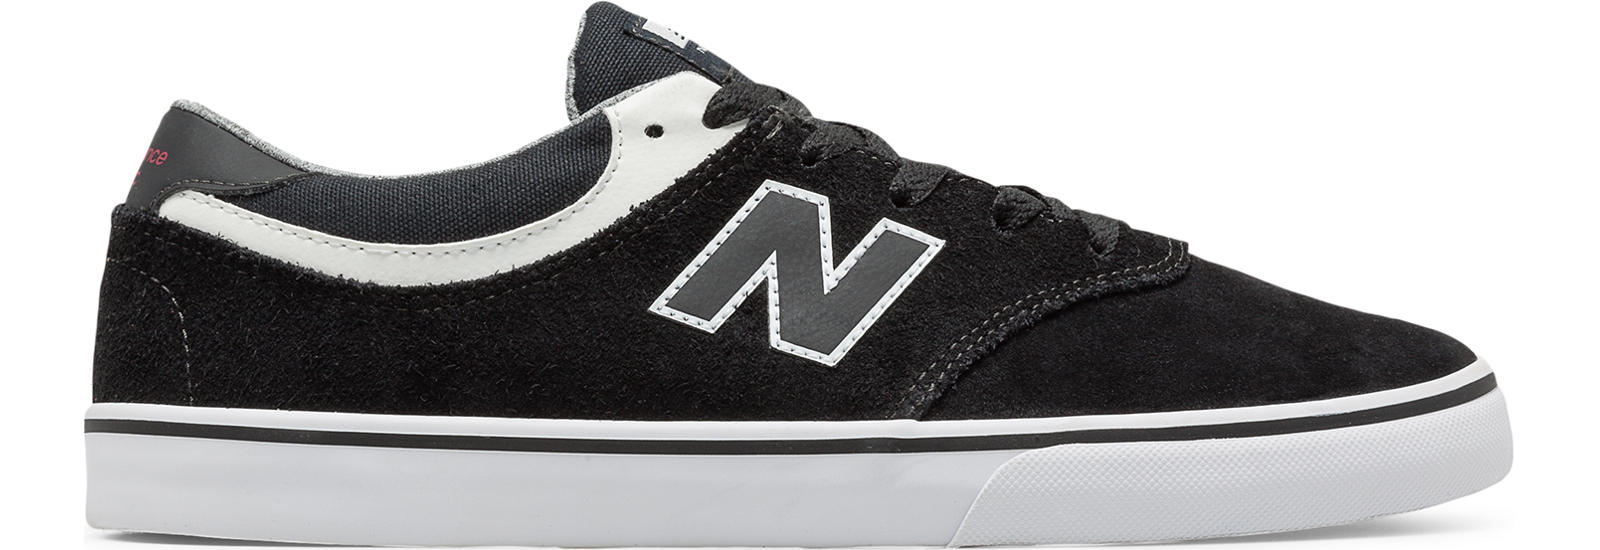 new balance skate shoes. men\u0027s shoes size \u0026 fit chart new balance skate